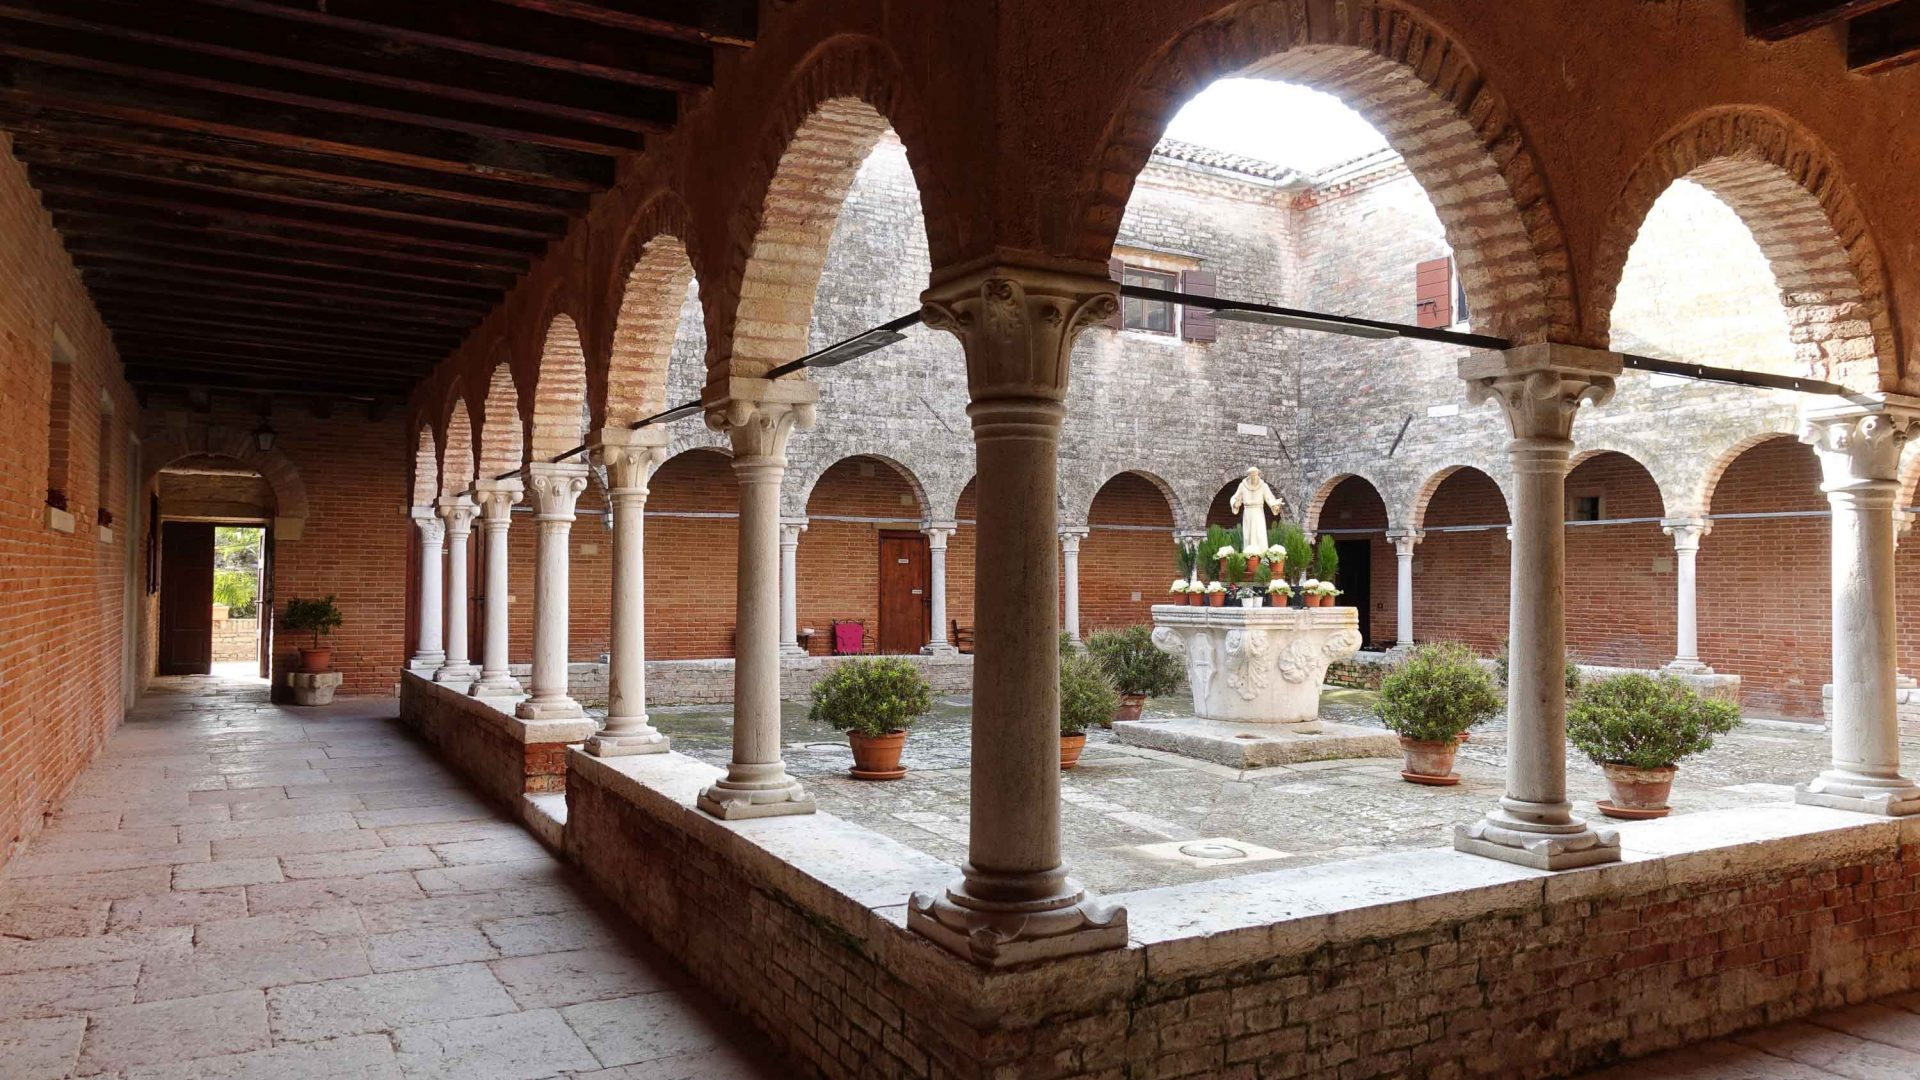 Cloisters on the island of San Francesco del Deserto in the lagoon of Venice.